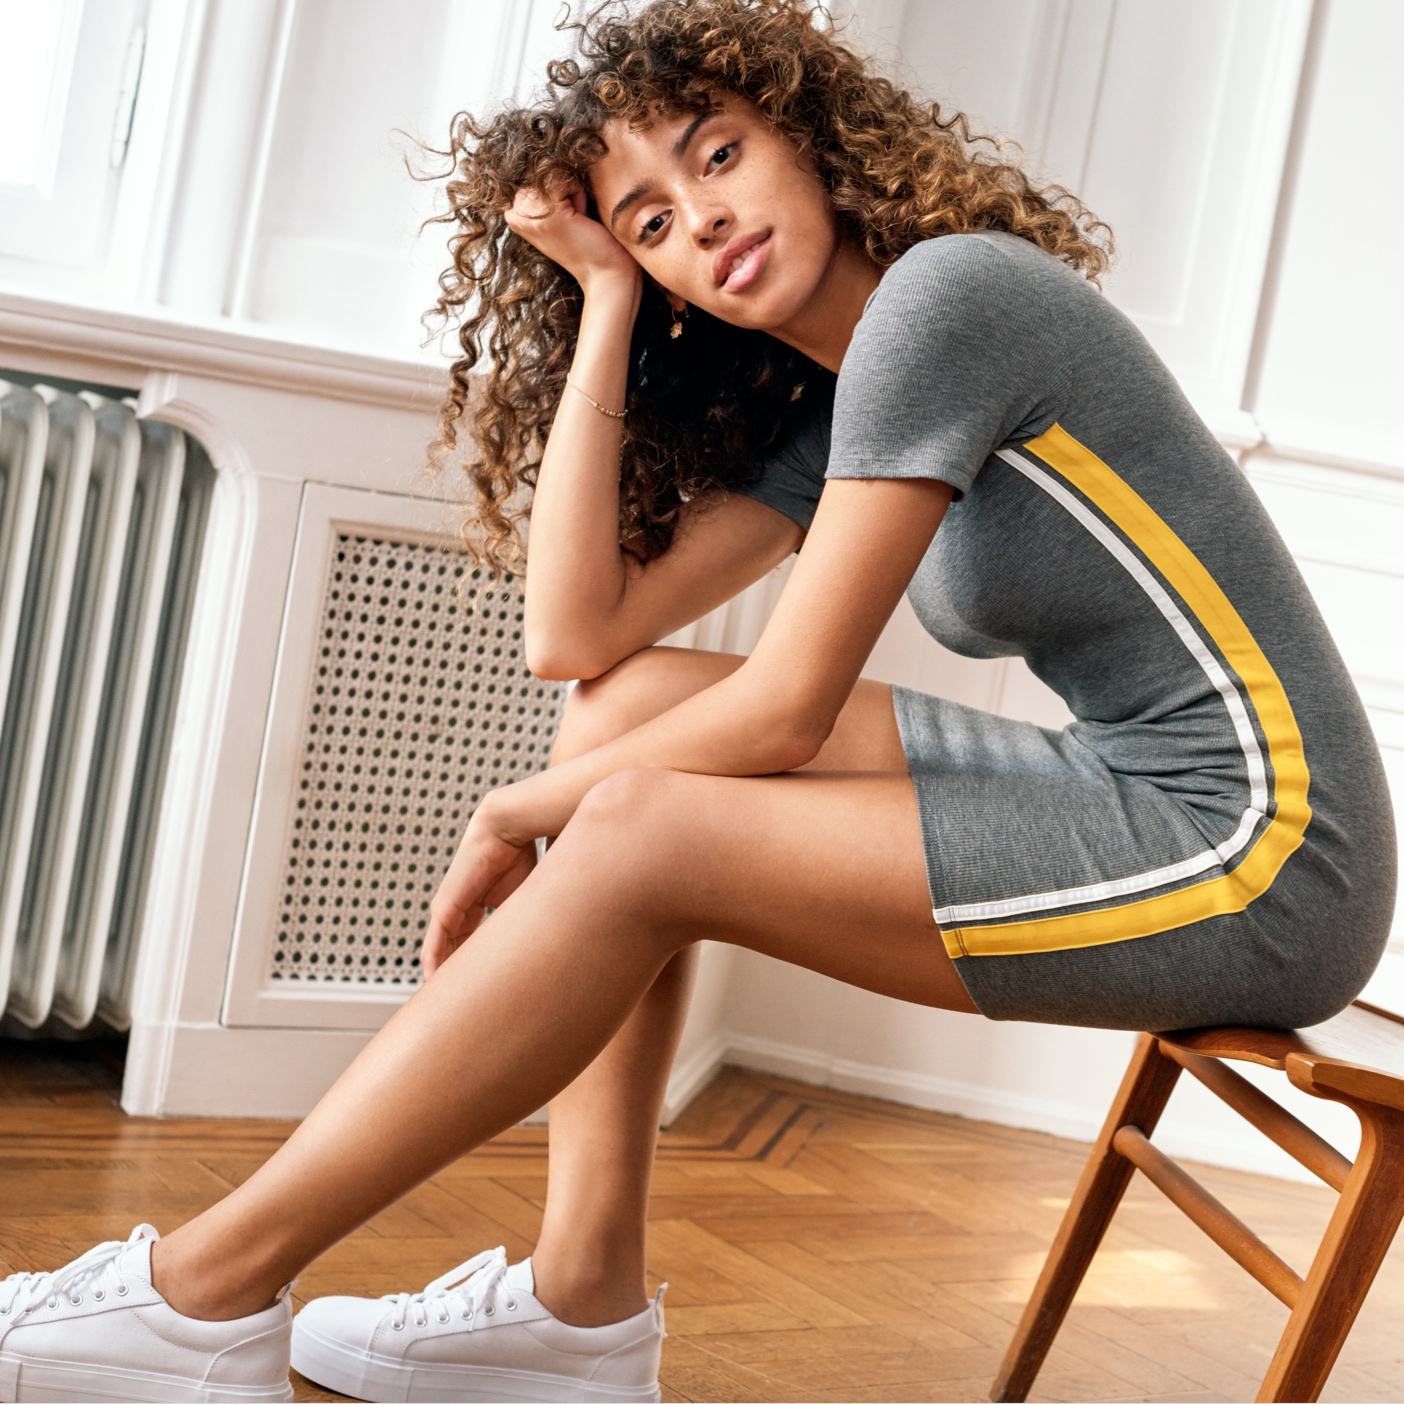 Woman sitting on edge of chair leaning on her elbow wearing gray knit dress with yellow and white stripe down the side, wearing white tennis shoes.